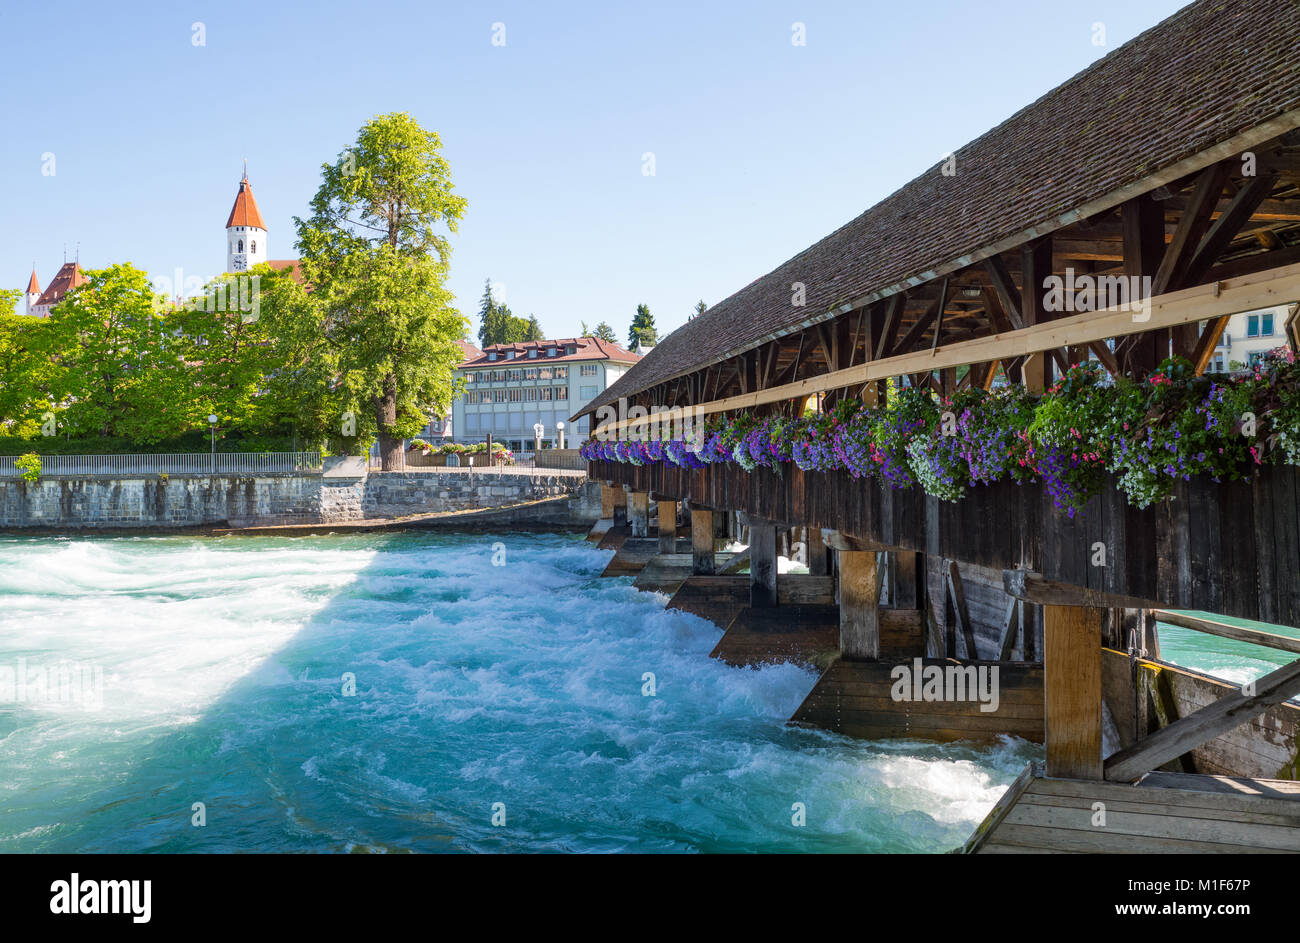 Switzerland, Thun, the Old Lock of the Aare river - Stock Image